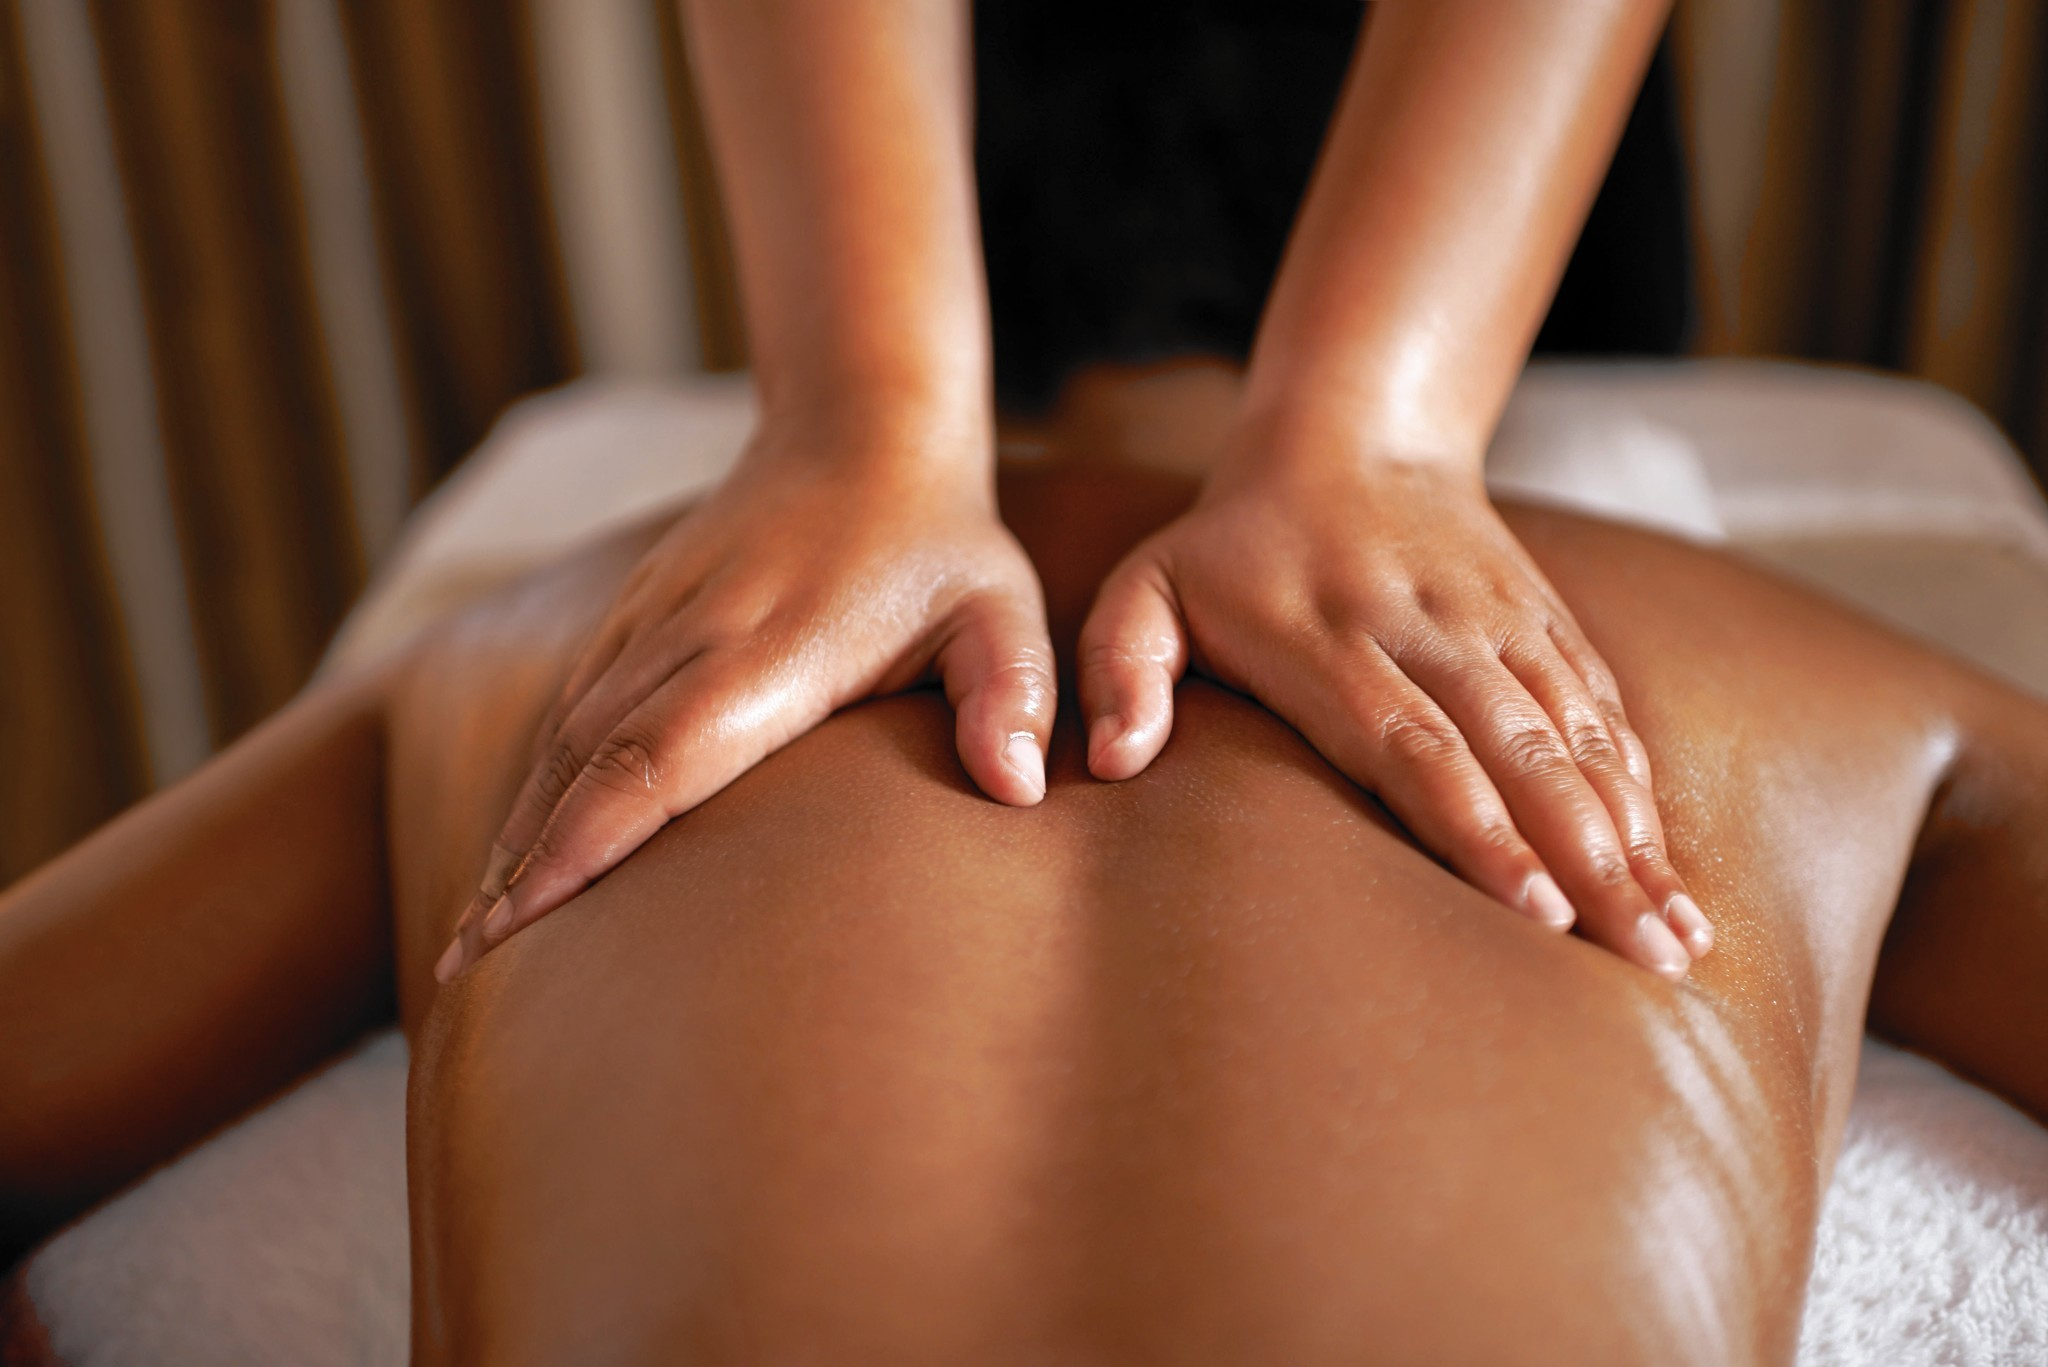 Try New Sort Of Adult Massage And Build A Close Bond With Your Partner